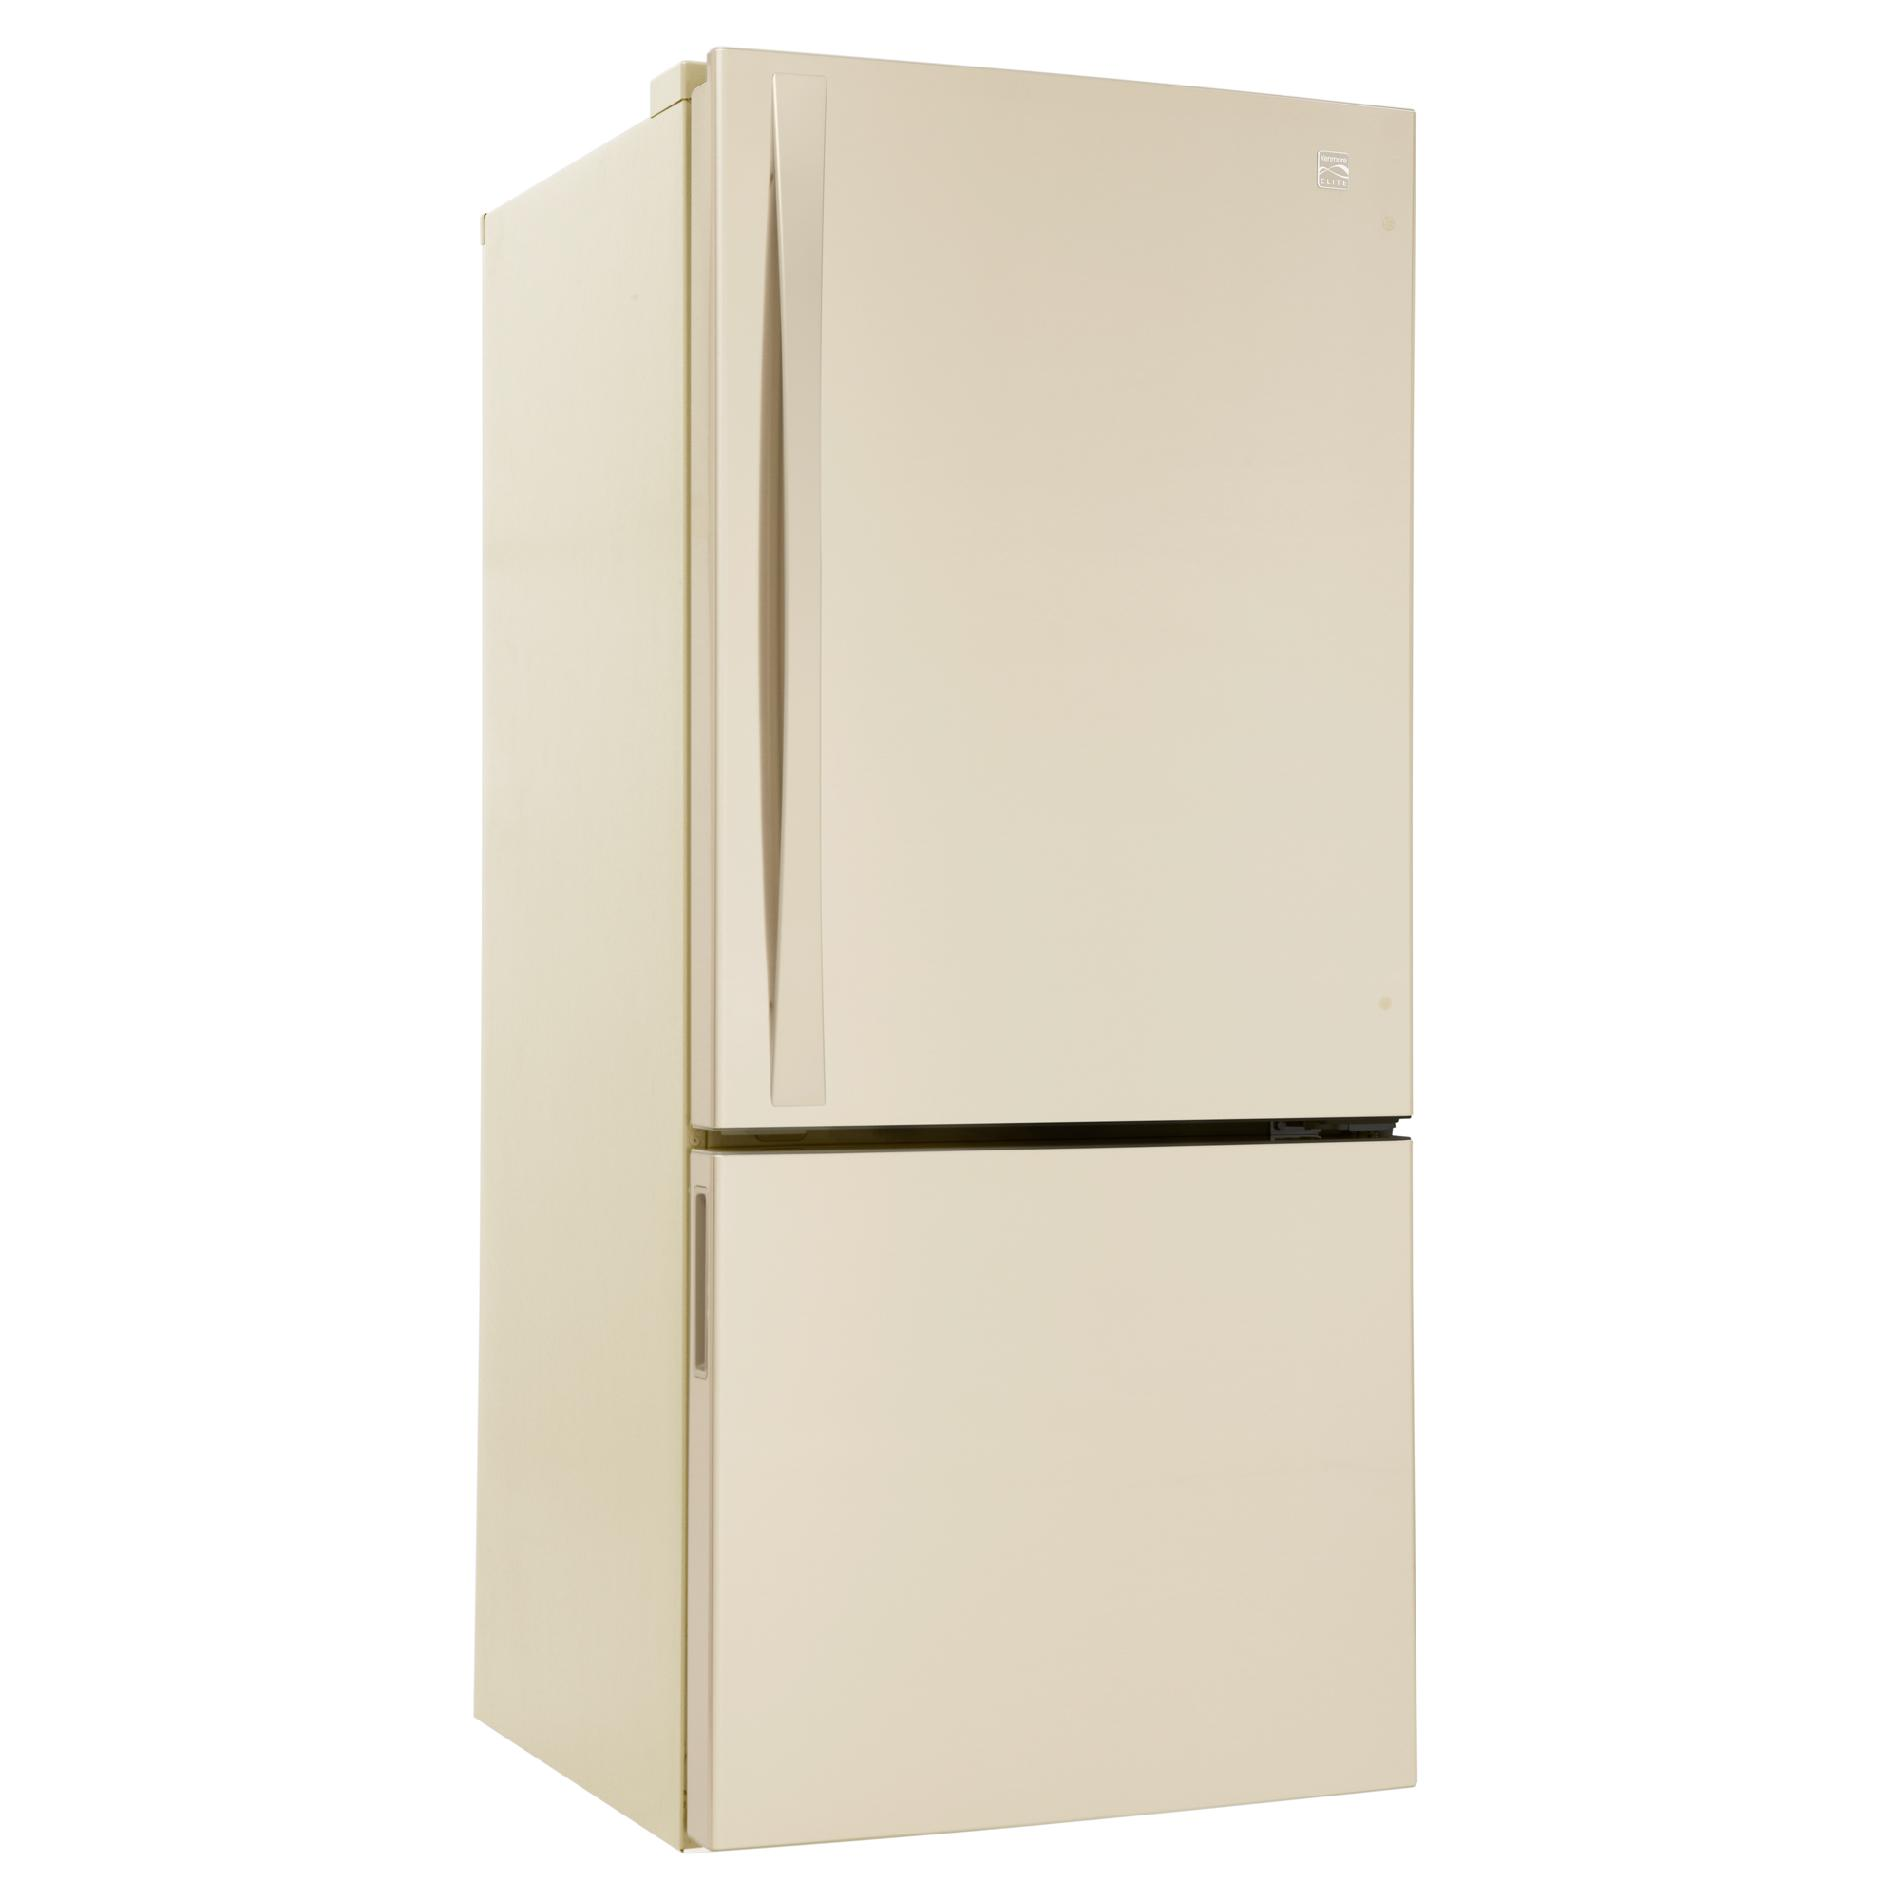 Kenmore Elite 22 cu. ft. Bottom-Freezer Refrigerator - Bisque